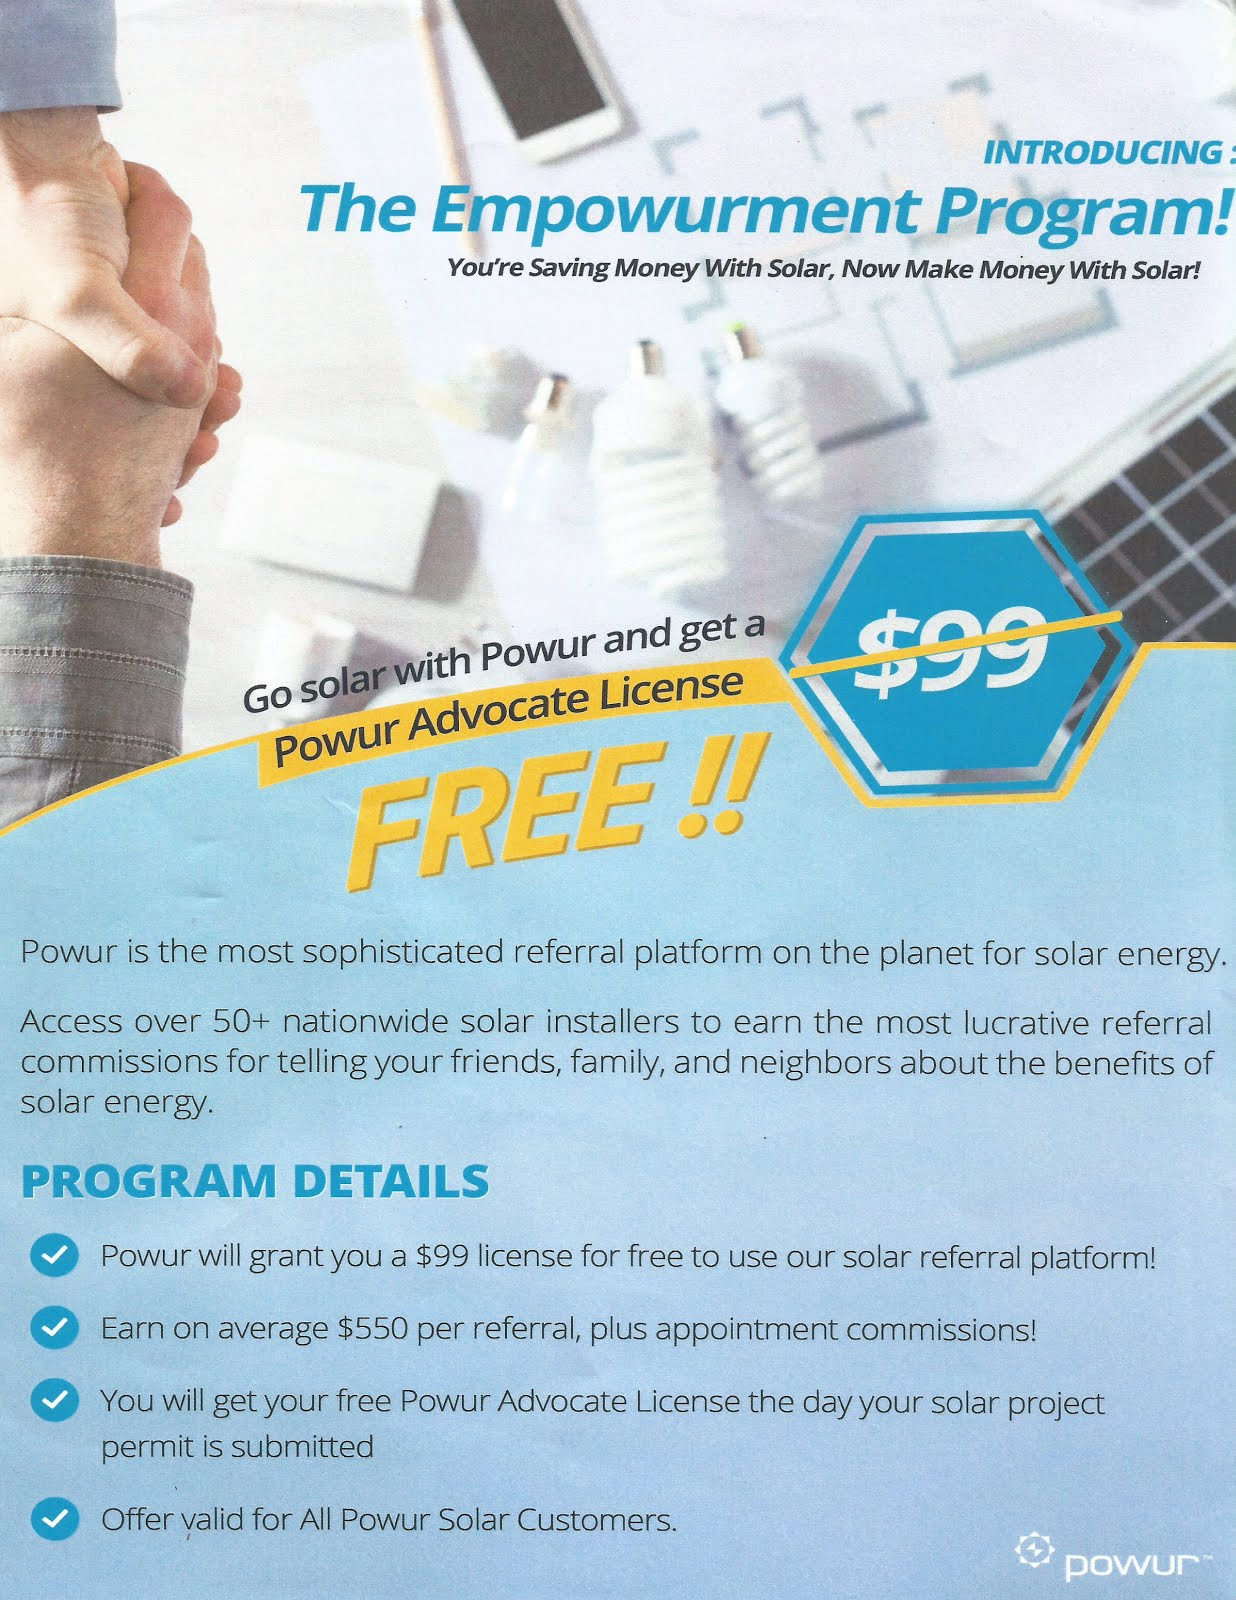 The Empowerment Program